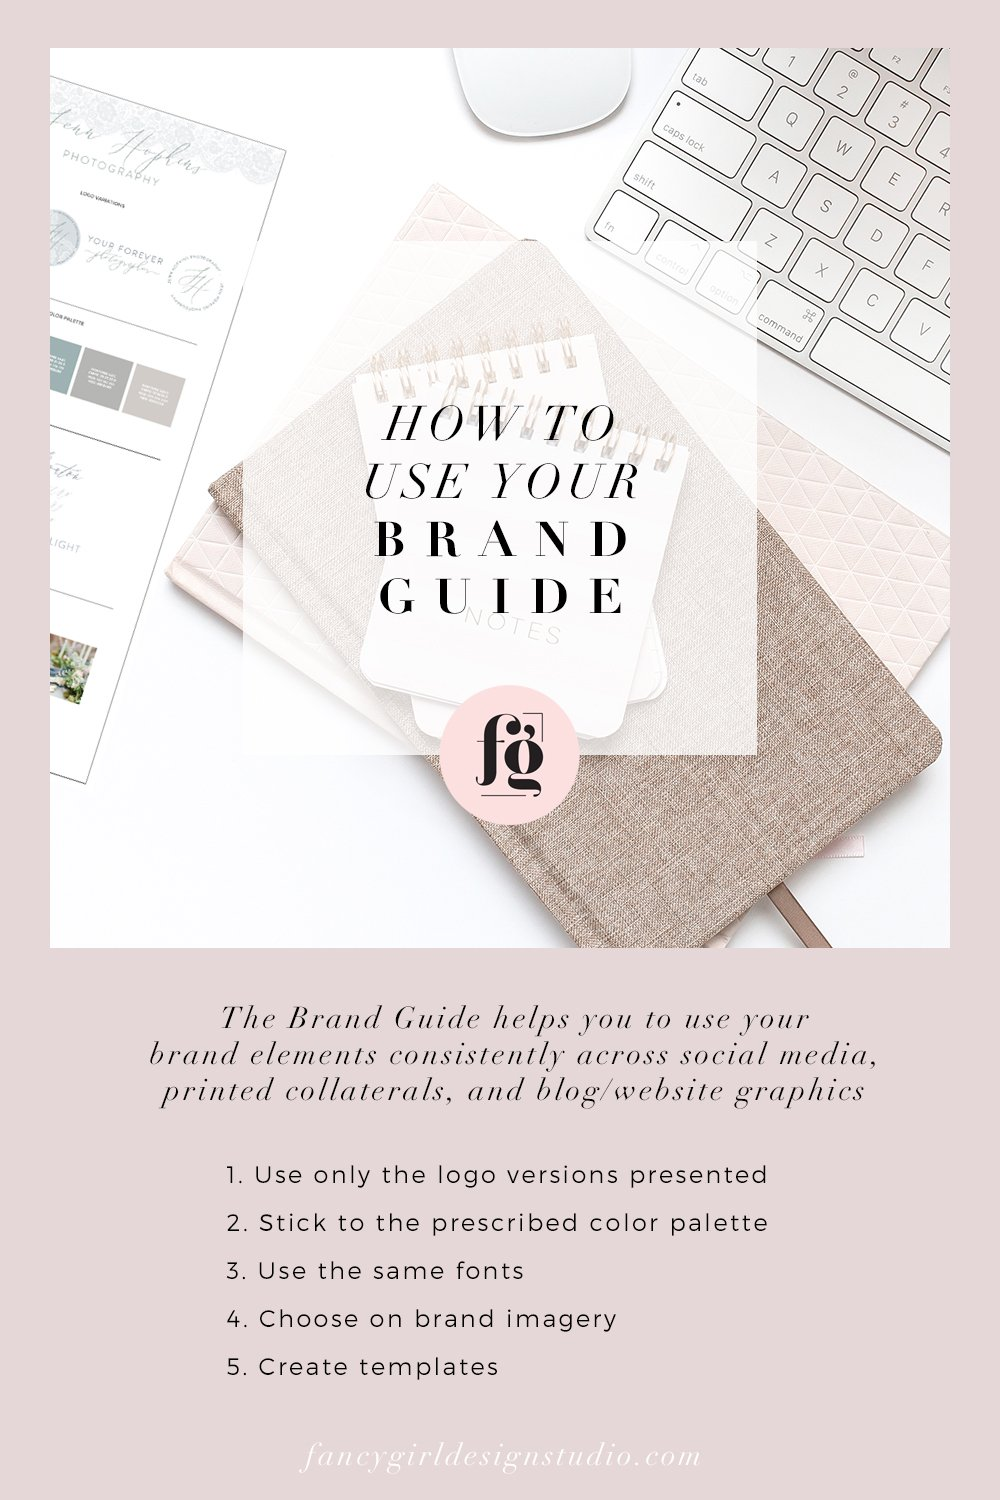 How to use your brand guide. By Fancy Girl Design Studio